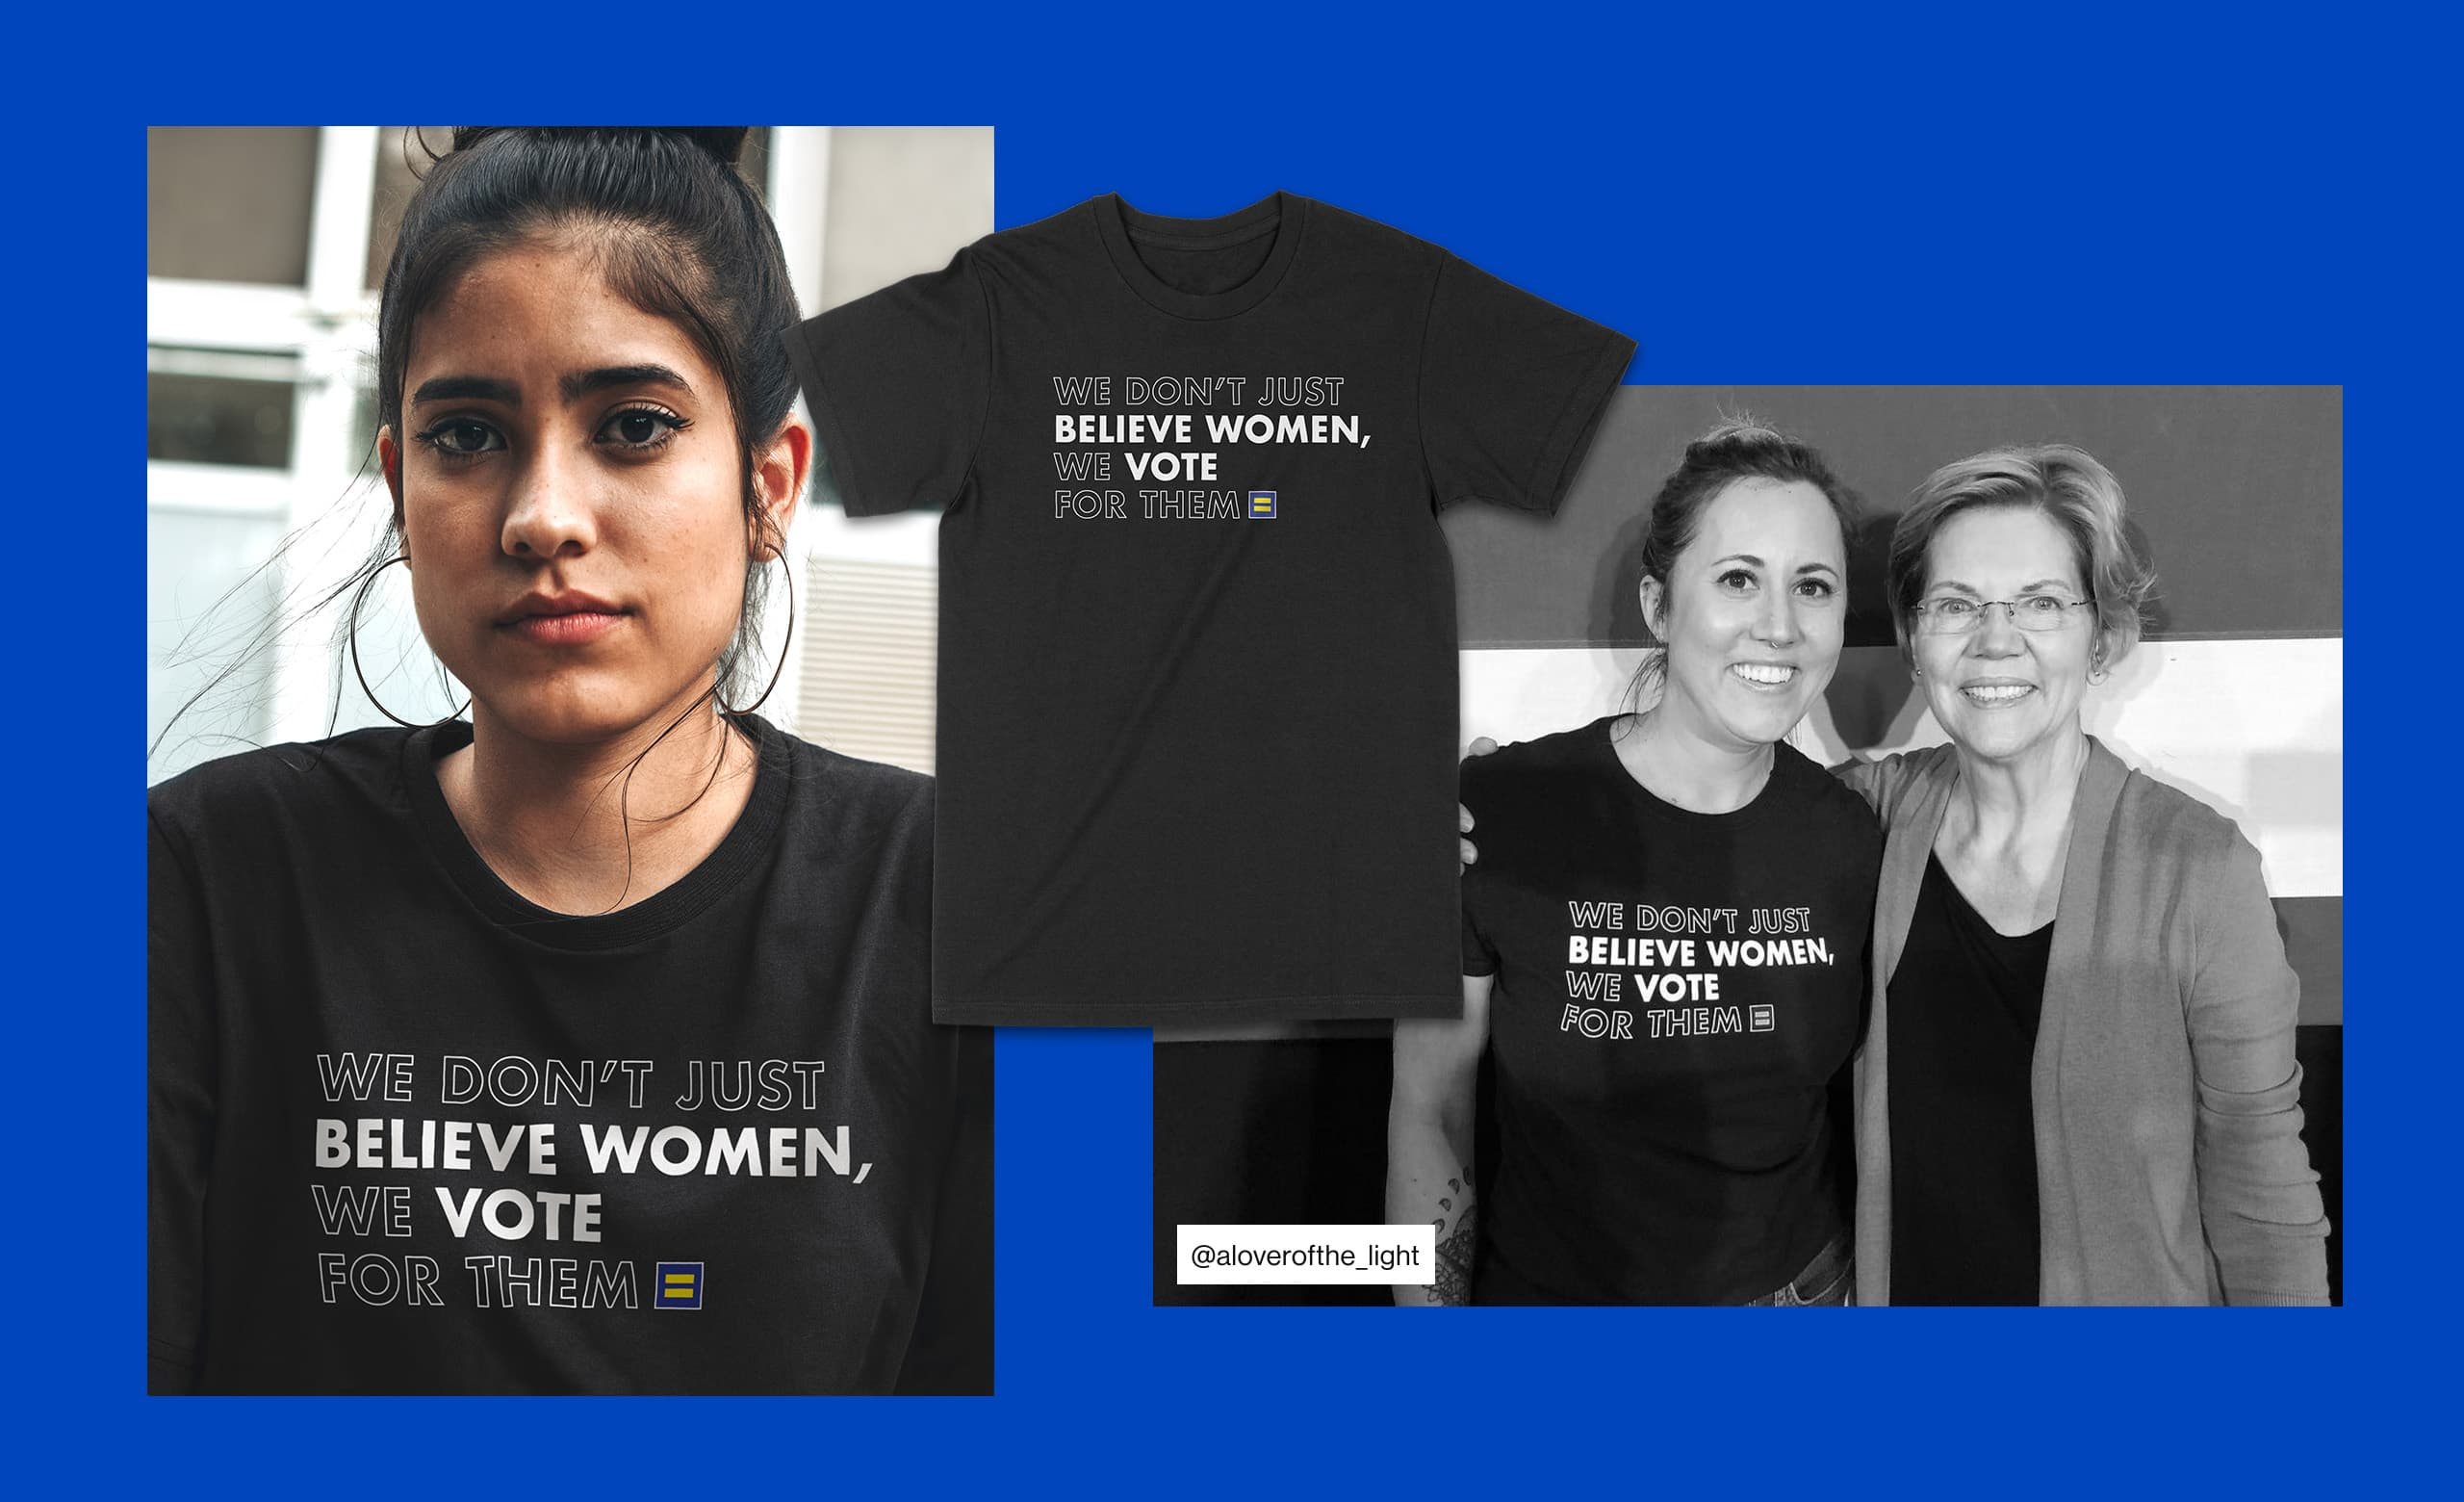 """A collage featuring a t-shirt designed for HRC that says """"We Don't Just Believe Women, We Vote for Them."""""""